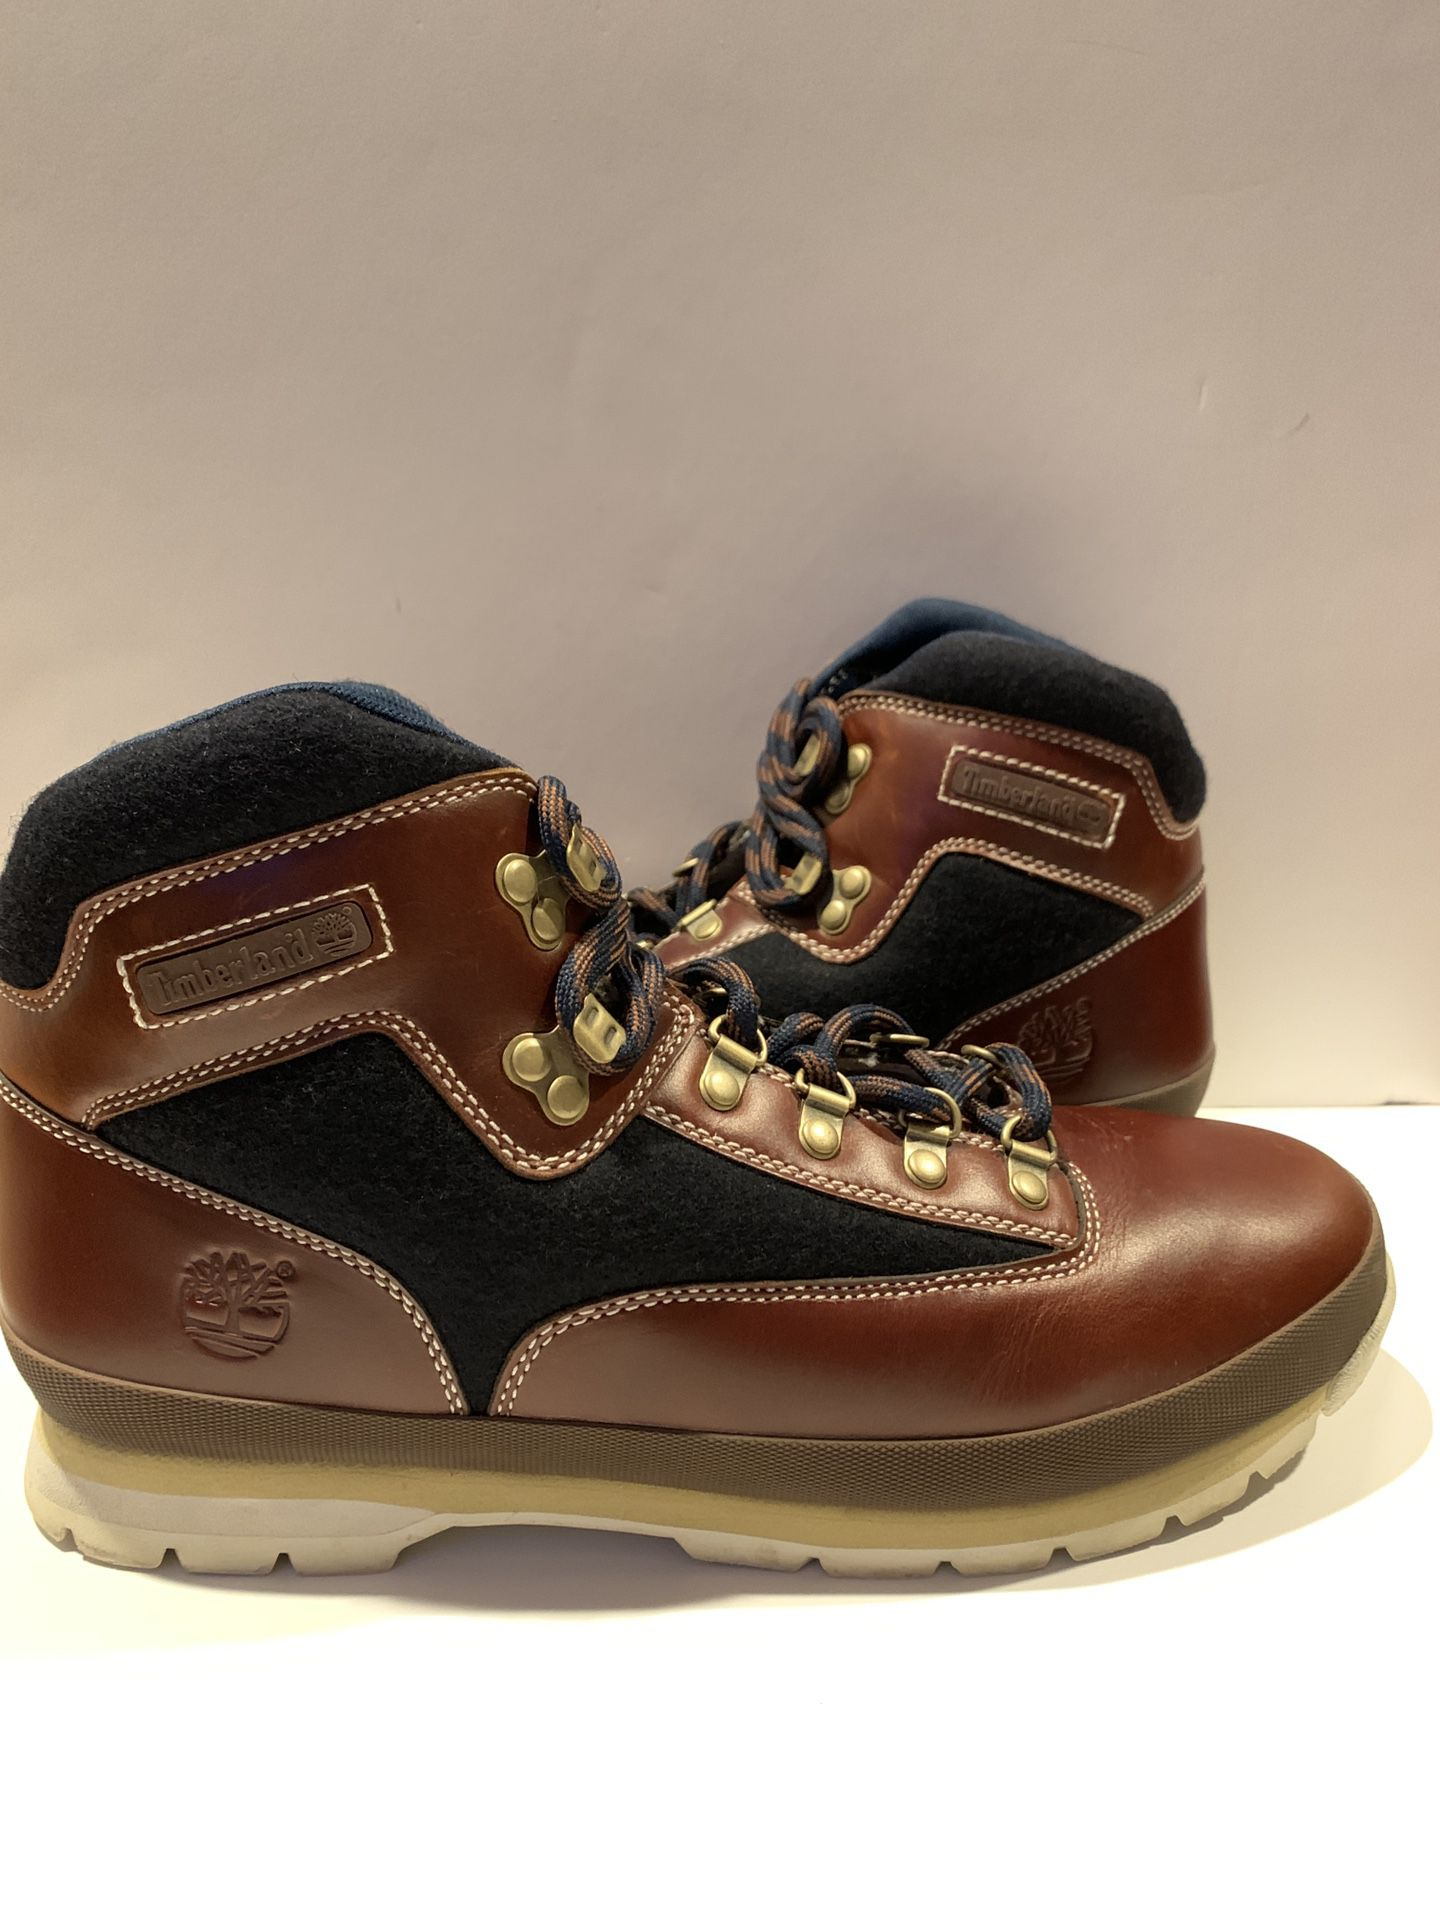 Timberland Euro Hiker Boots Hiking Outdoor 11